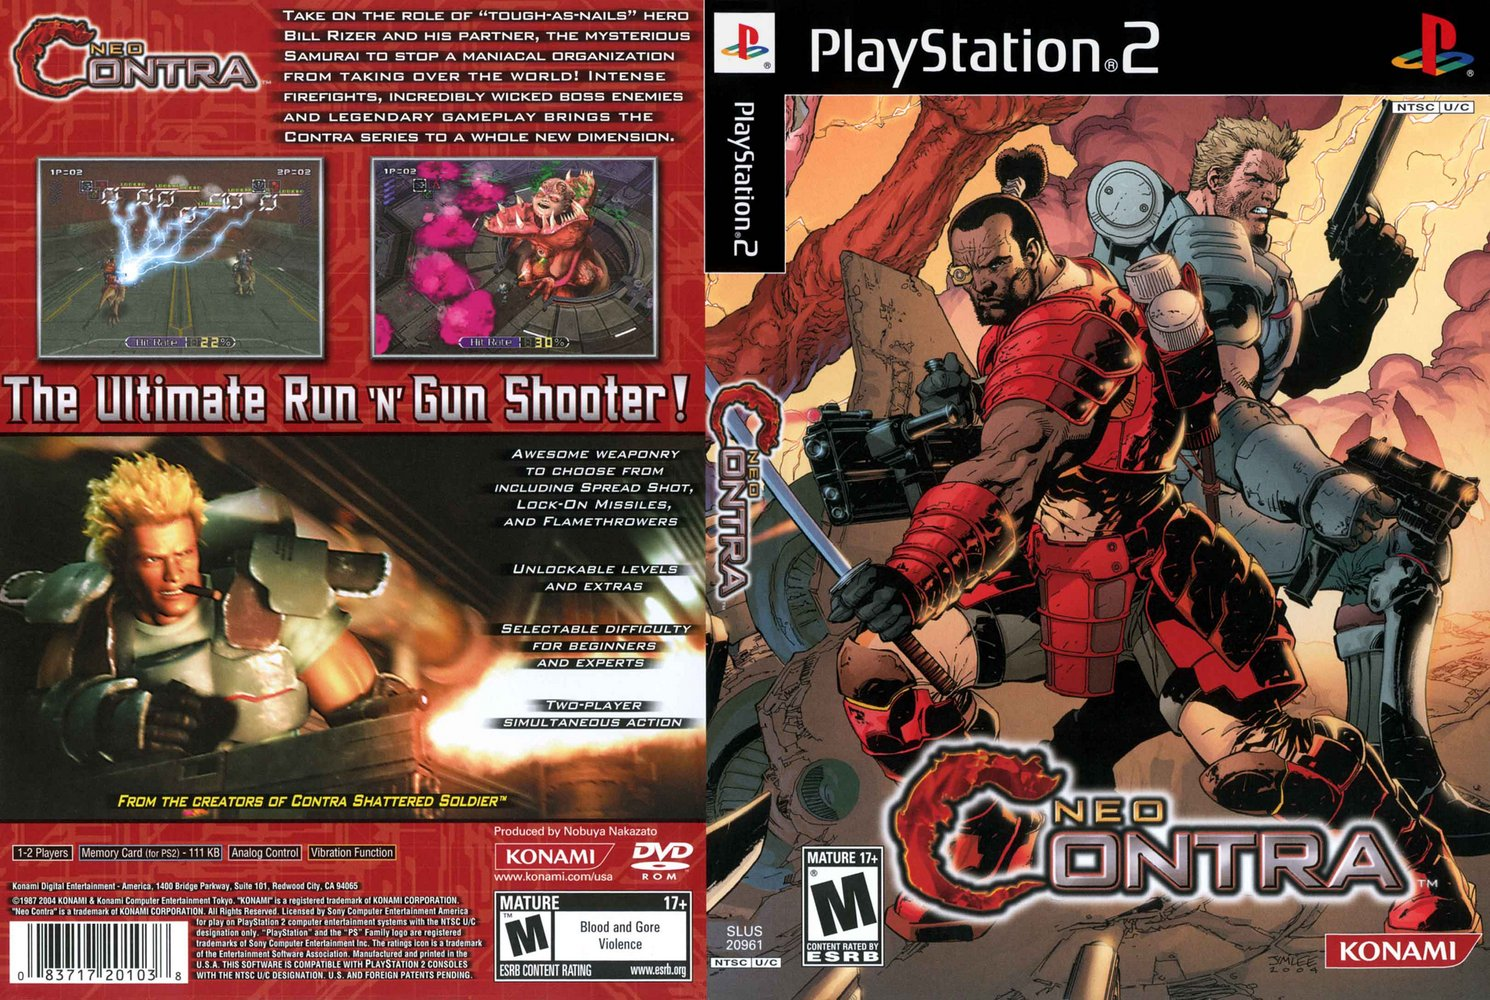 Jc Video Ps2 Neo Contra